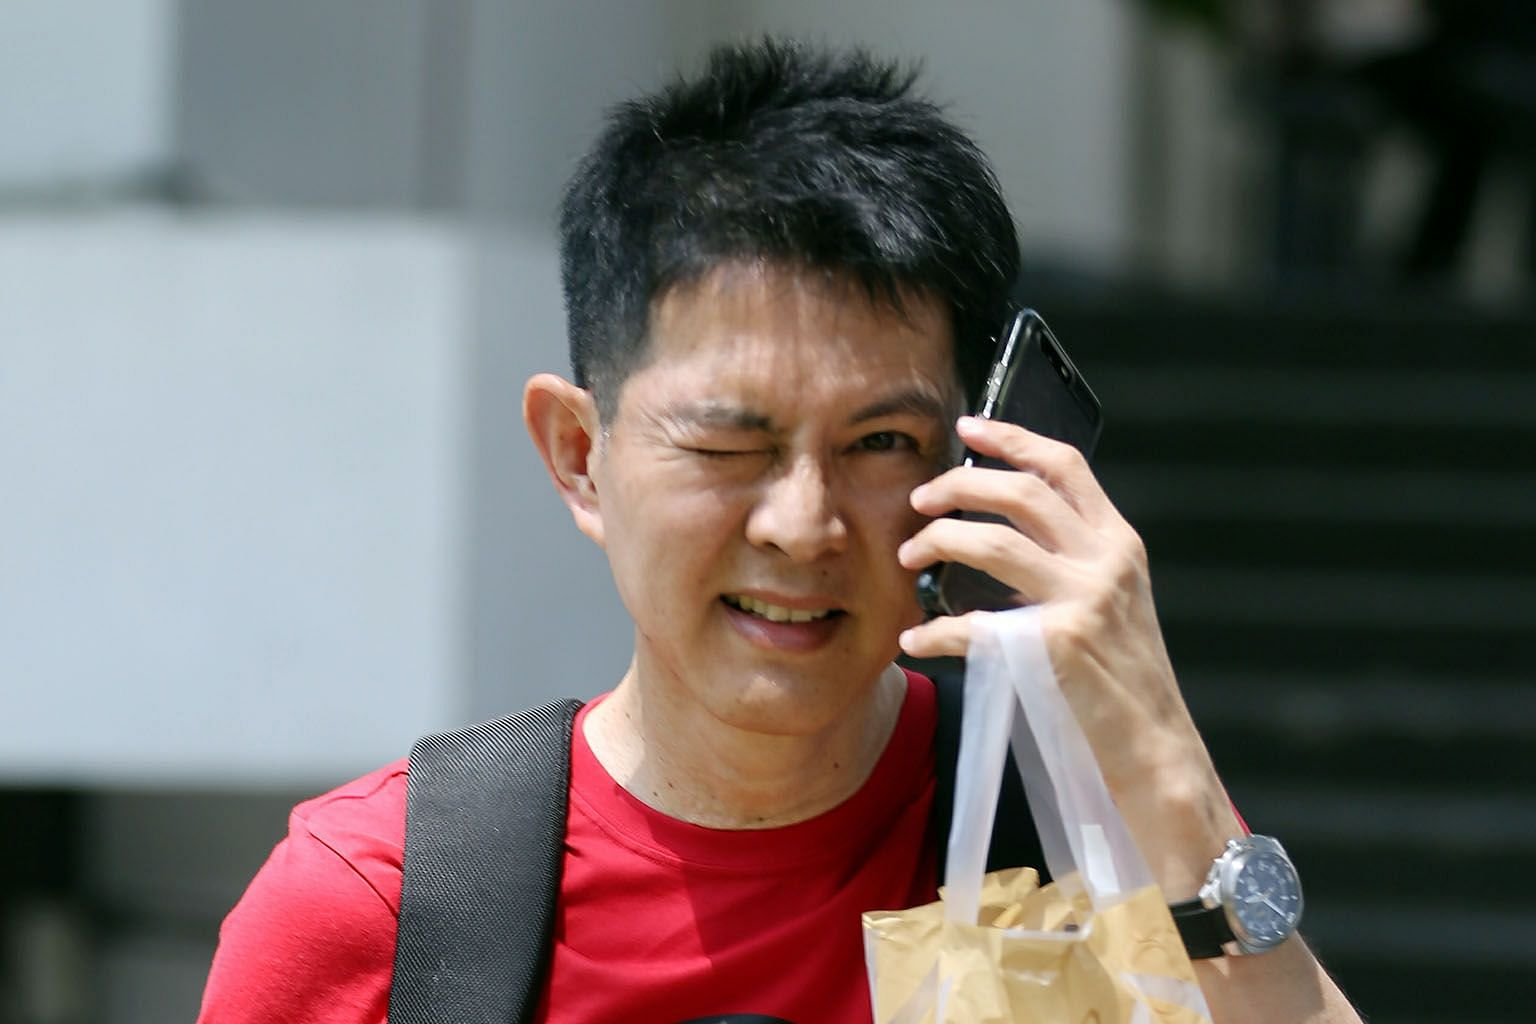 Former lecturer Chan Cheng was arrested on Nov 27, 1999, and was due to be charged two days later, but absconded to Malaysia. He was arrested by the Malaysian authorities and extradited to Singapore on Dec 7, 2016.